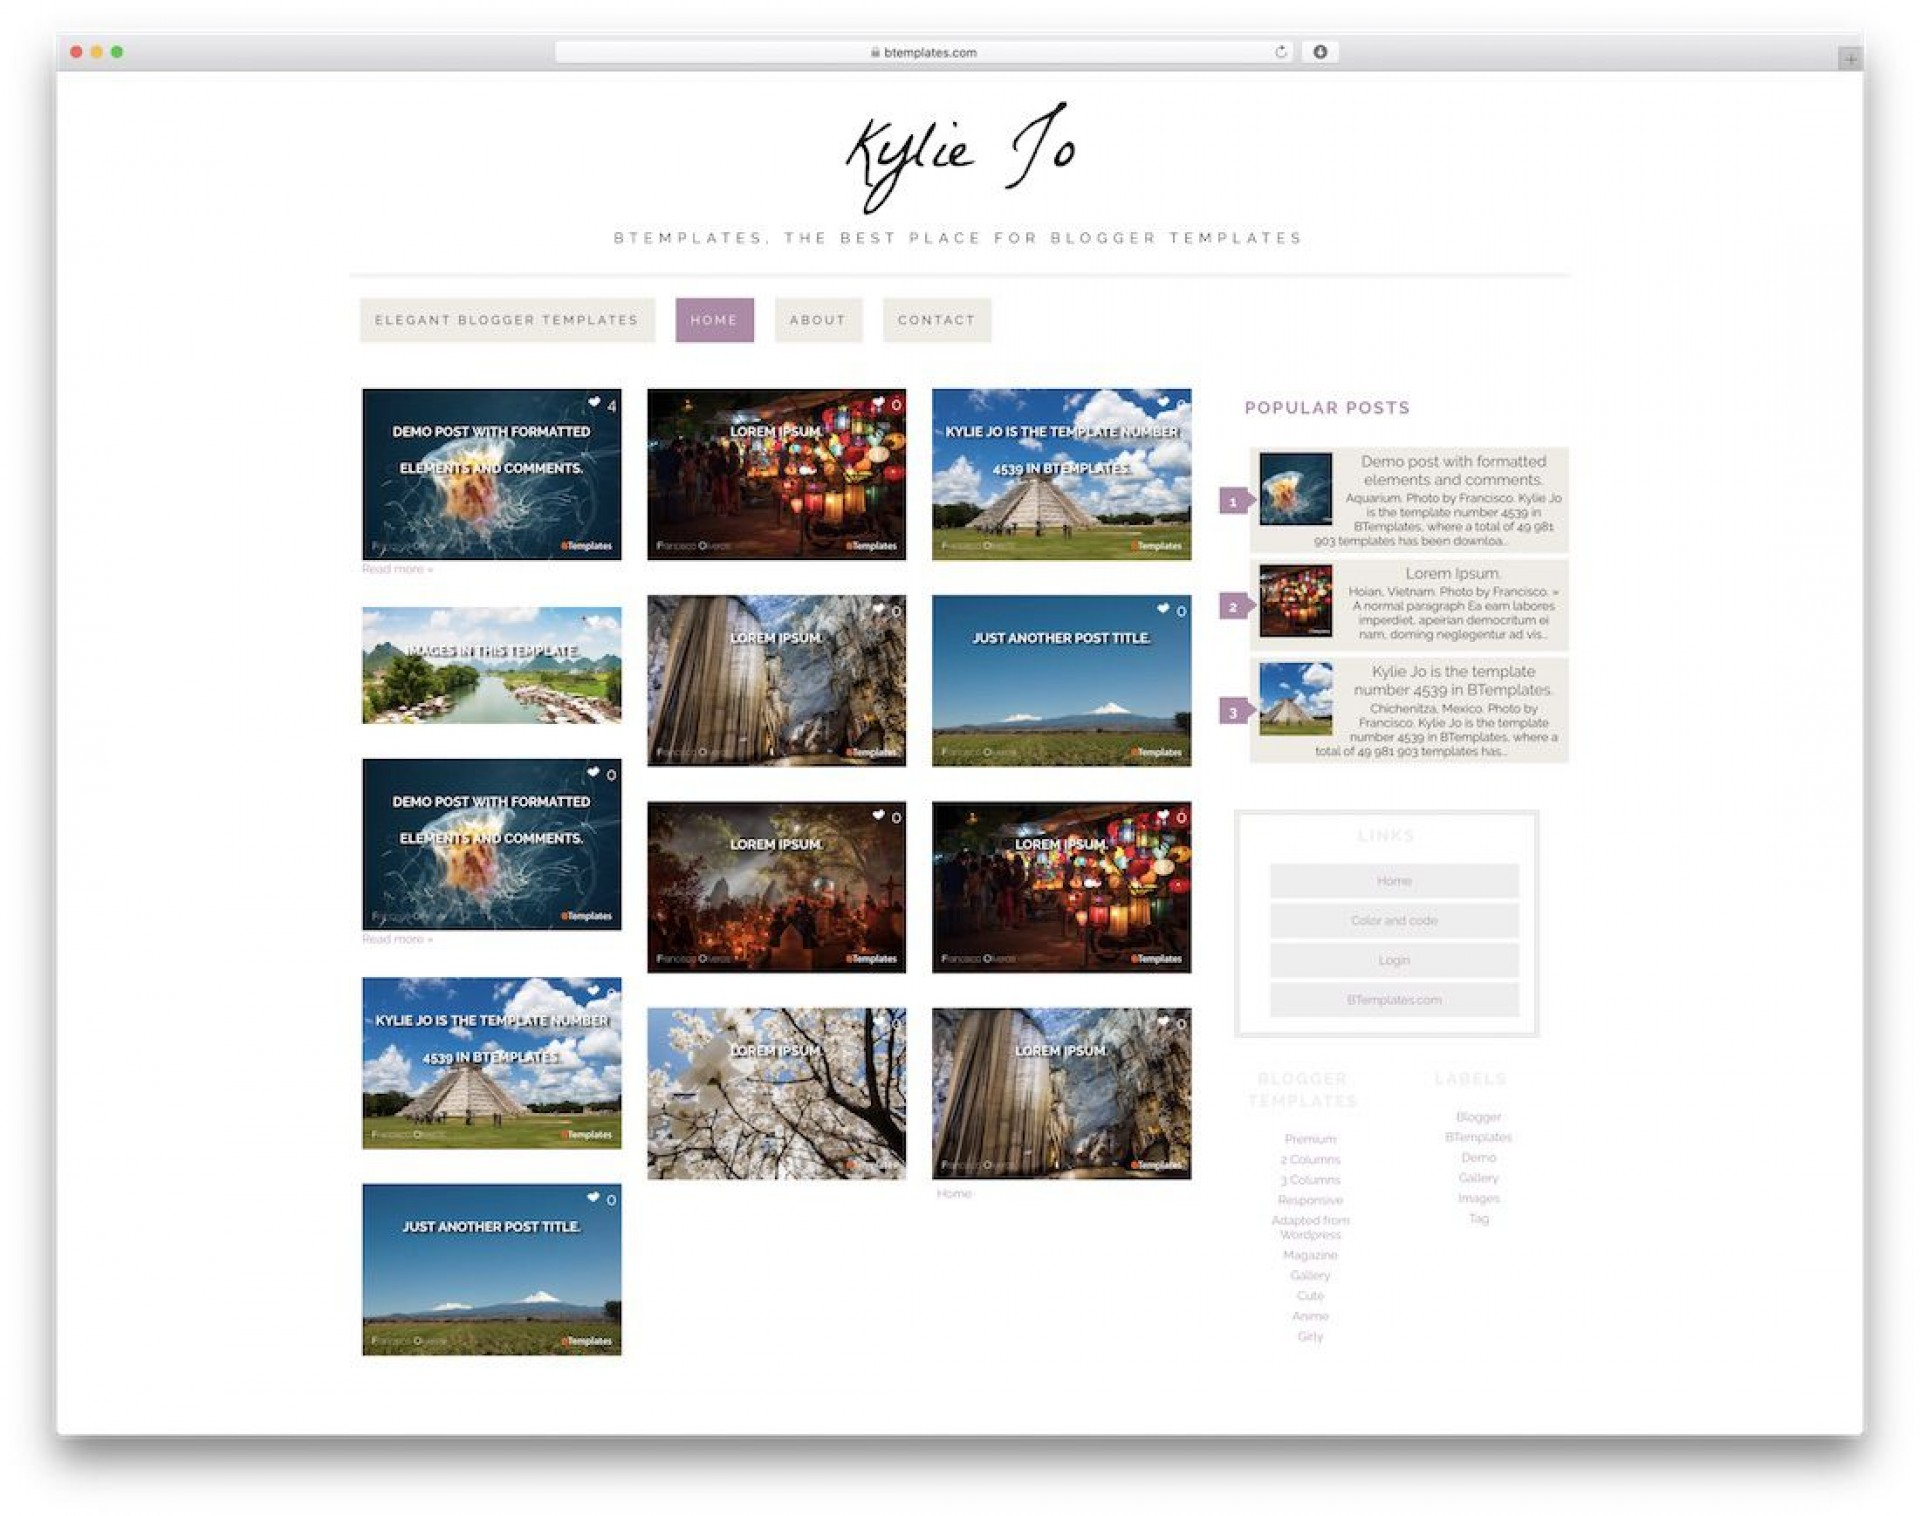 006 Unusual Best Free Blogger Template Highest Quality  Templates Responsive 2019 20201920